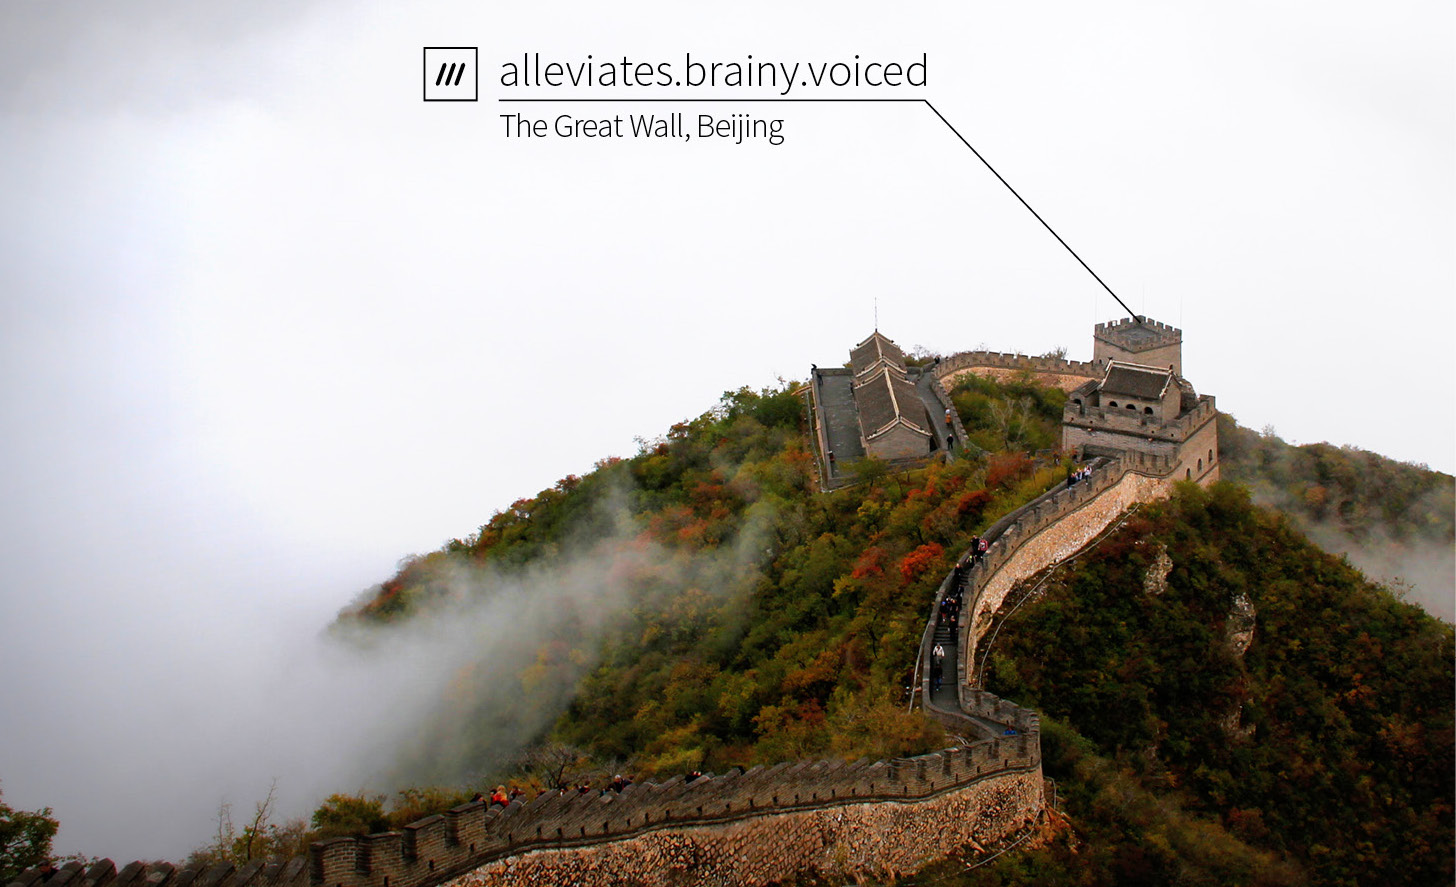 The Great Wall of China, according to what3words